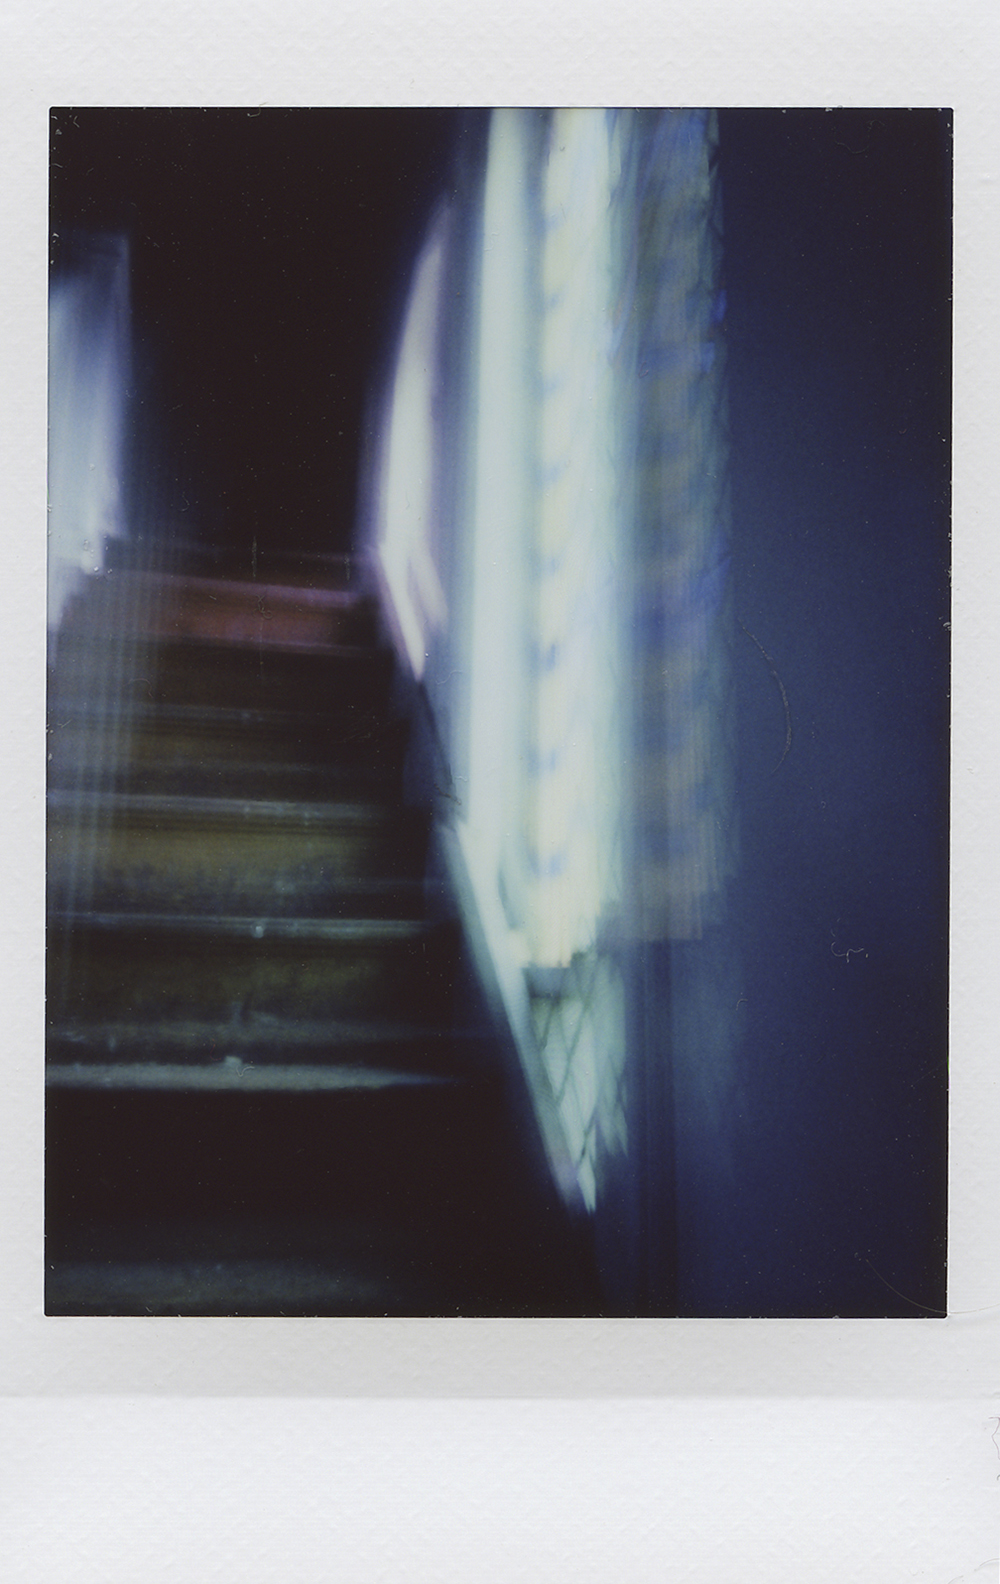 A photo of a staircase. This is one of several images by Alexandra Gataeva featured in photo exhibitions around the world.